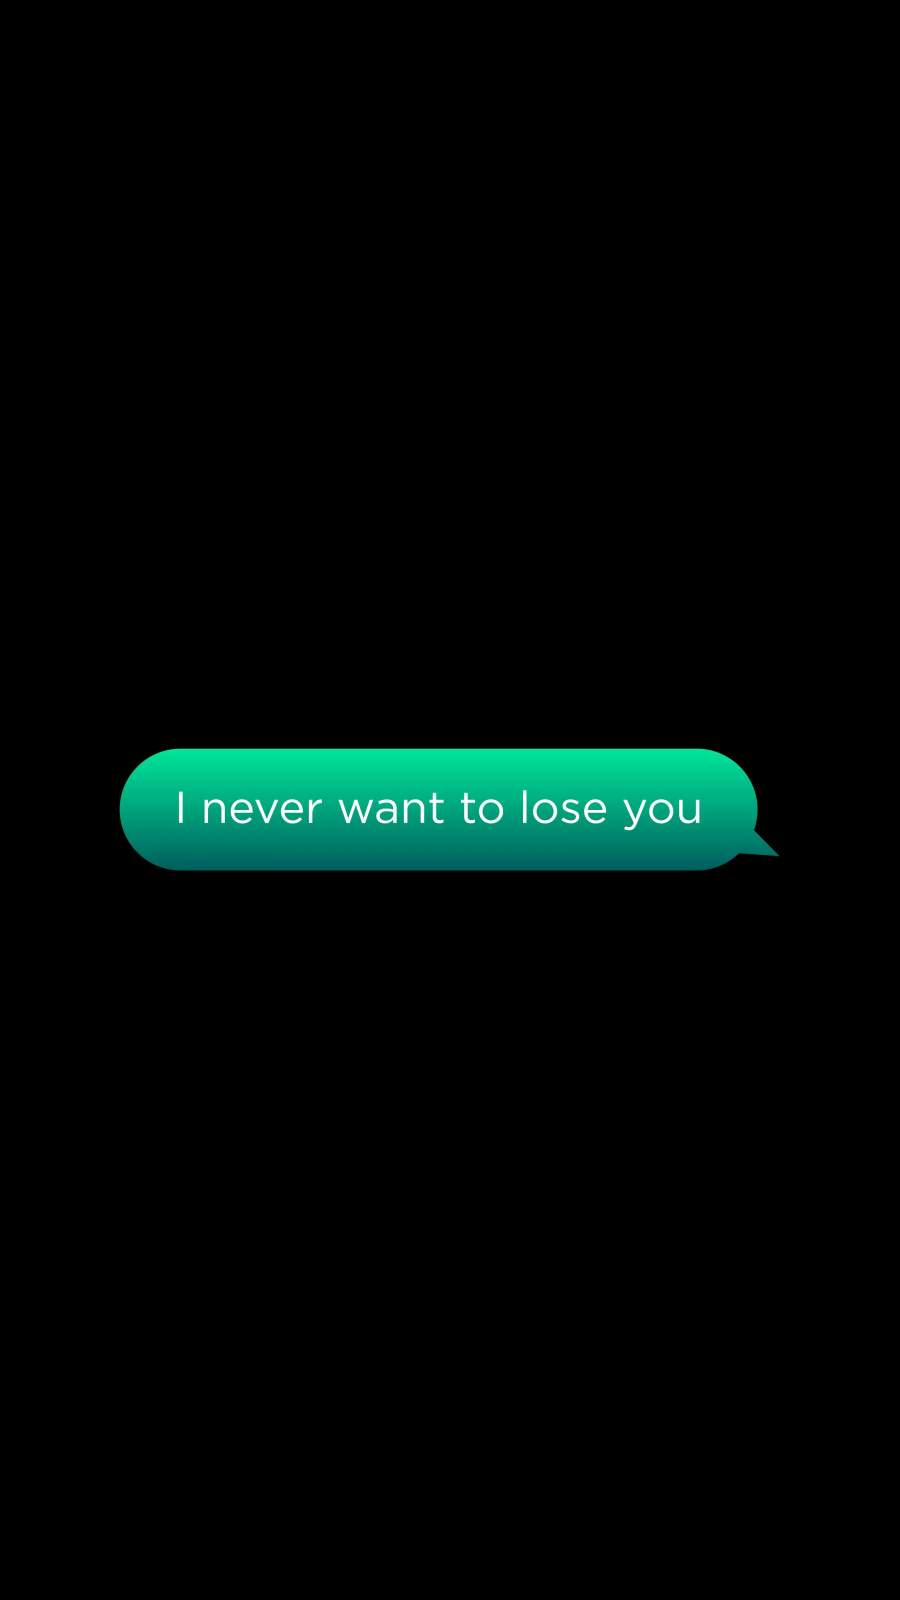 I Never Want to Lose You